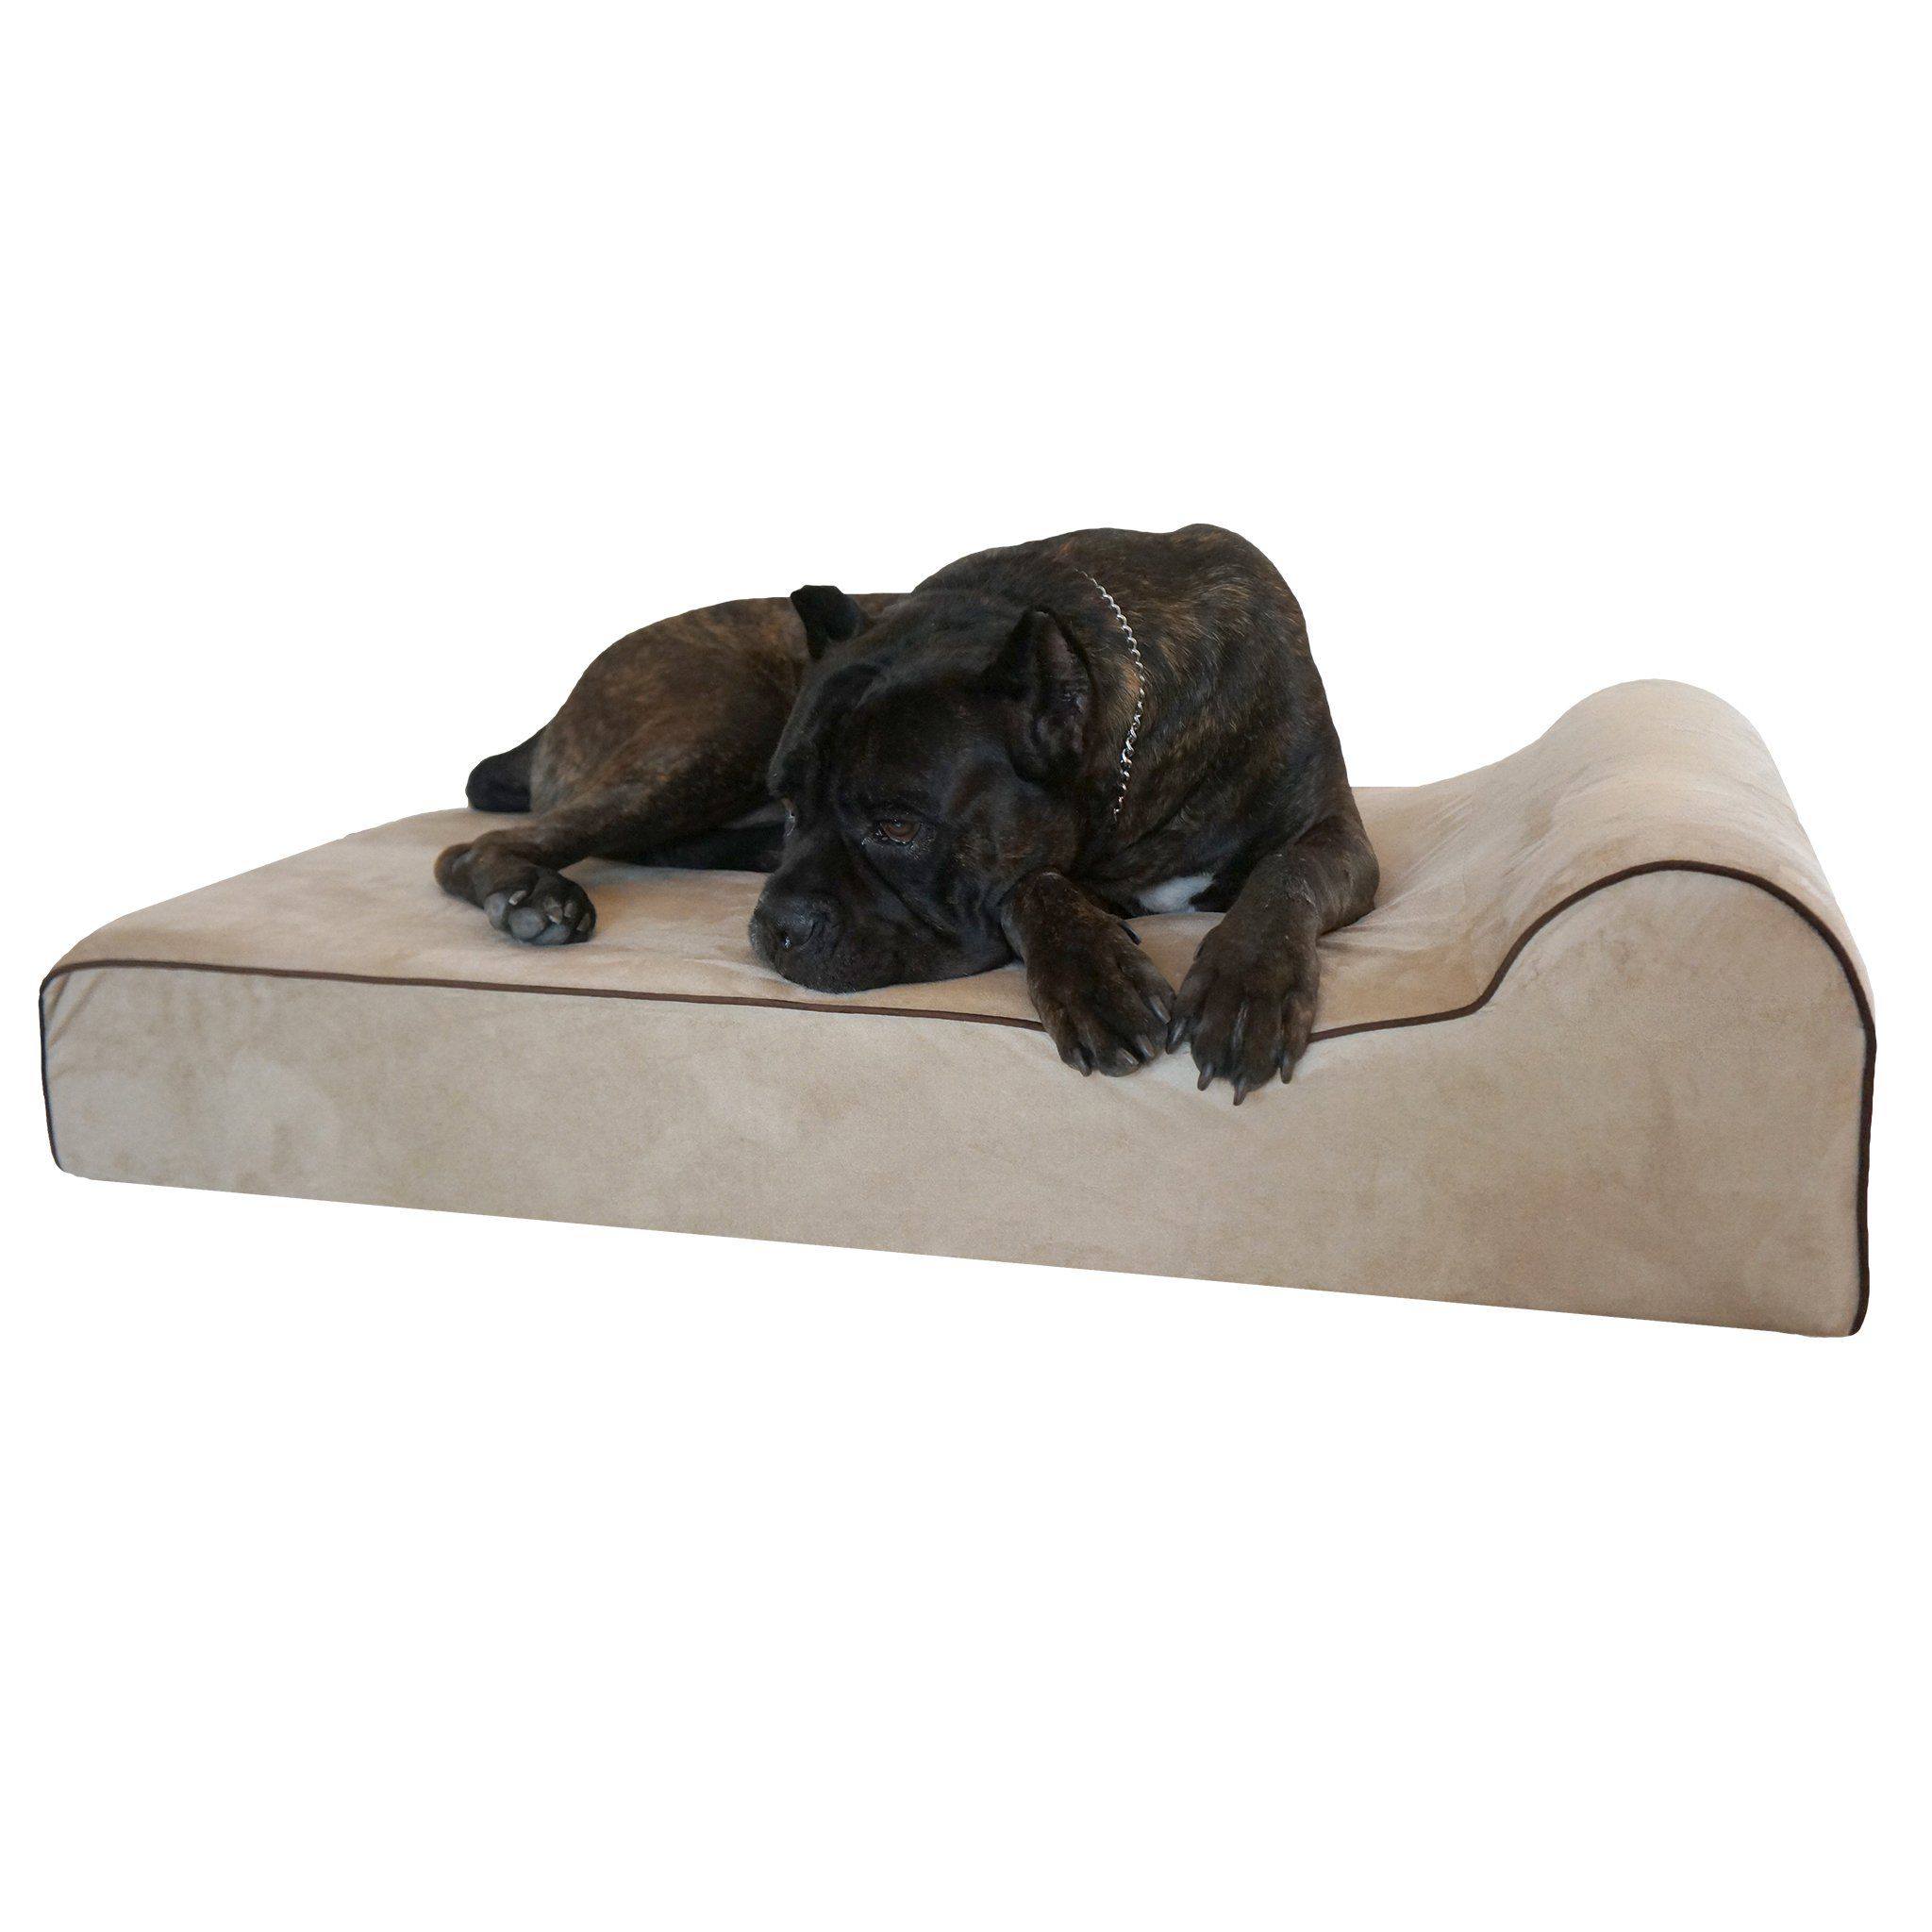 Bully beds Orthopedic Memory Foam Dog Bed Waterproof